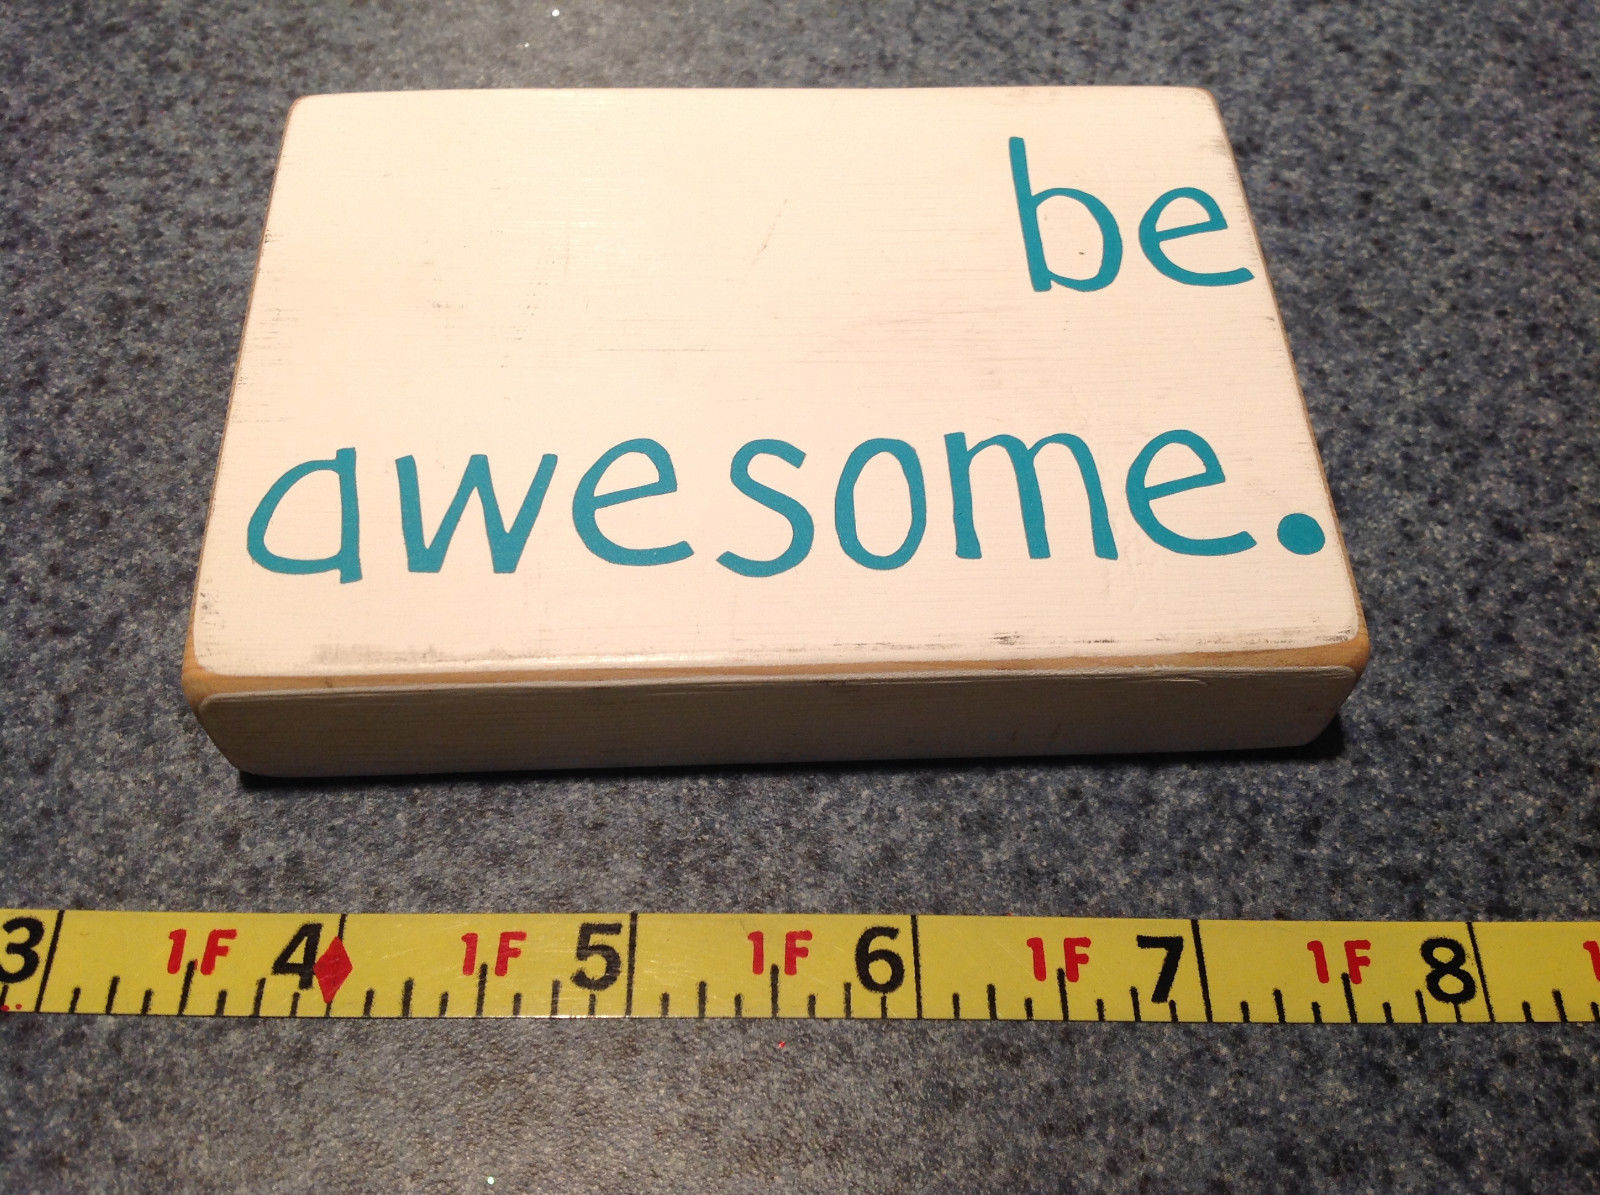 Be Awesome White Wooden Plaque Measurements Below